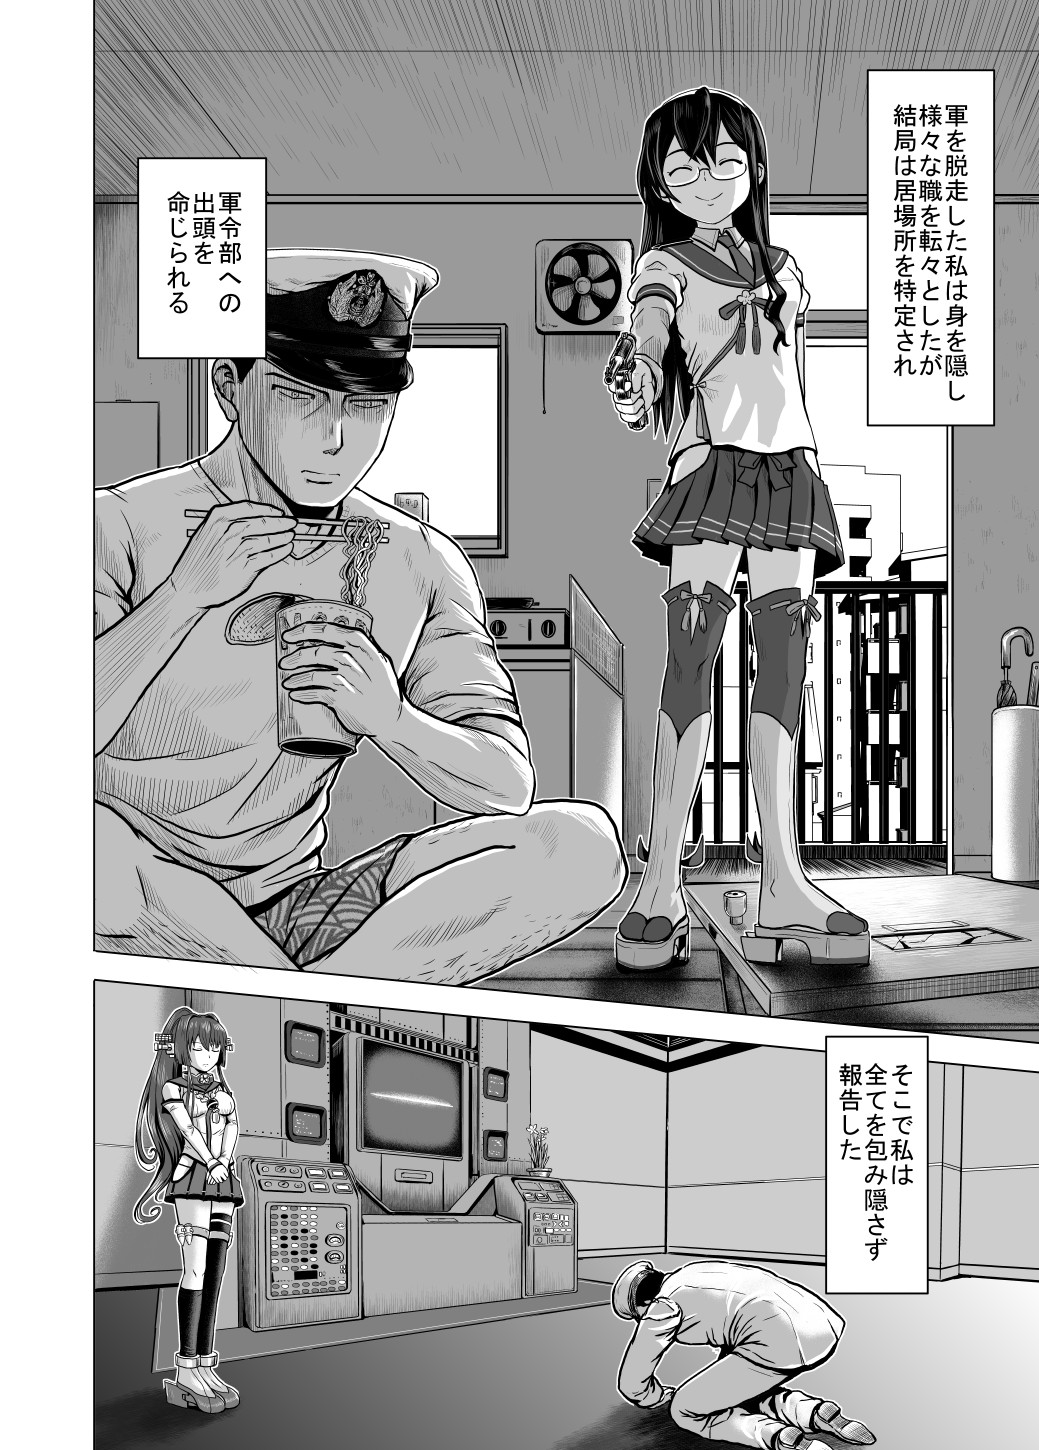 1boy 2girls admiral_(kantai_collection) apartment bomber_grape boxers closed_eyes comic commentary_request dogeza epaulettes gun hairband hakama_skirt handgun hat highres holding holding_weapon kantai_collection long_hair military military_hat military_uniform monitor monochrome multiple_girls ooyodo_(kantai_collection) peaked_cap pistol ponytail school_uniform serafuku smile thigh-highs translation_request underwear uniform weapon yamato_(kantai_collection)